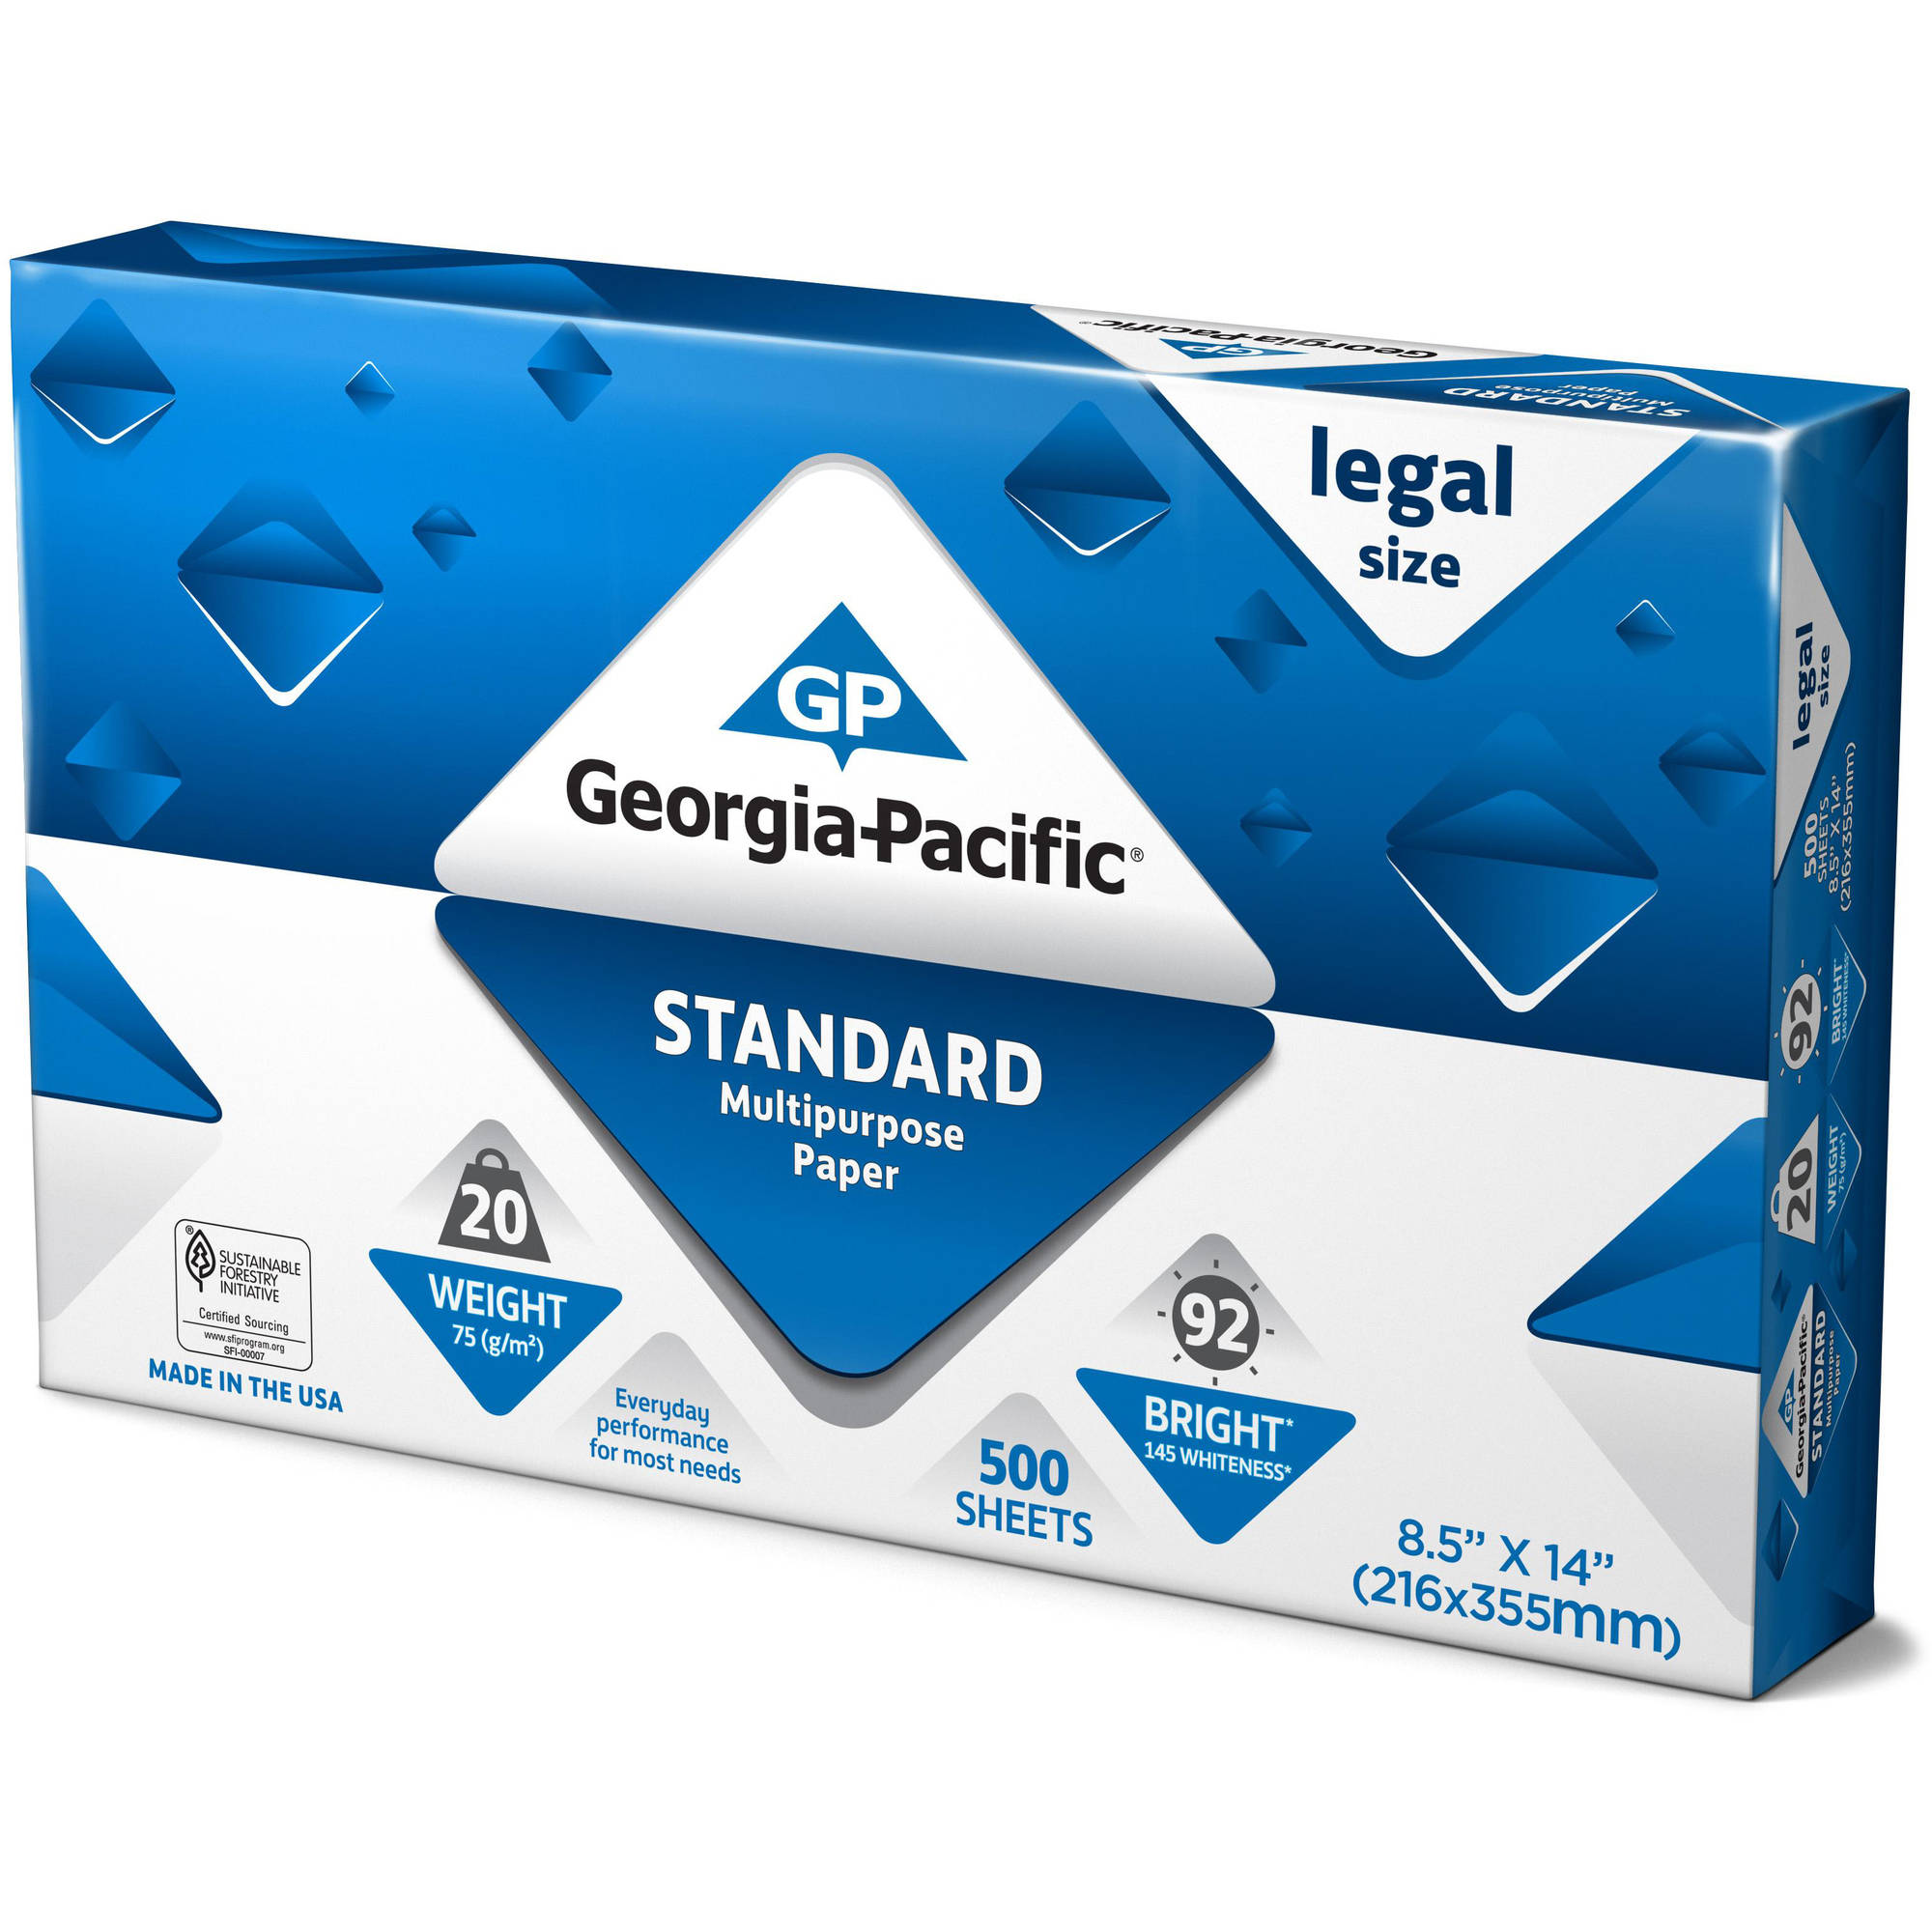 "Georgia-Pacific Standard Multipurpose Legal Paper, 8.5"" x 14"", 20lb, 92 Brightness, 500 Sheets"